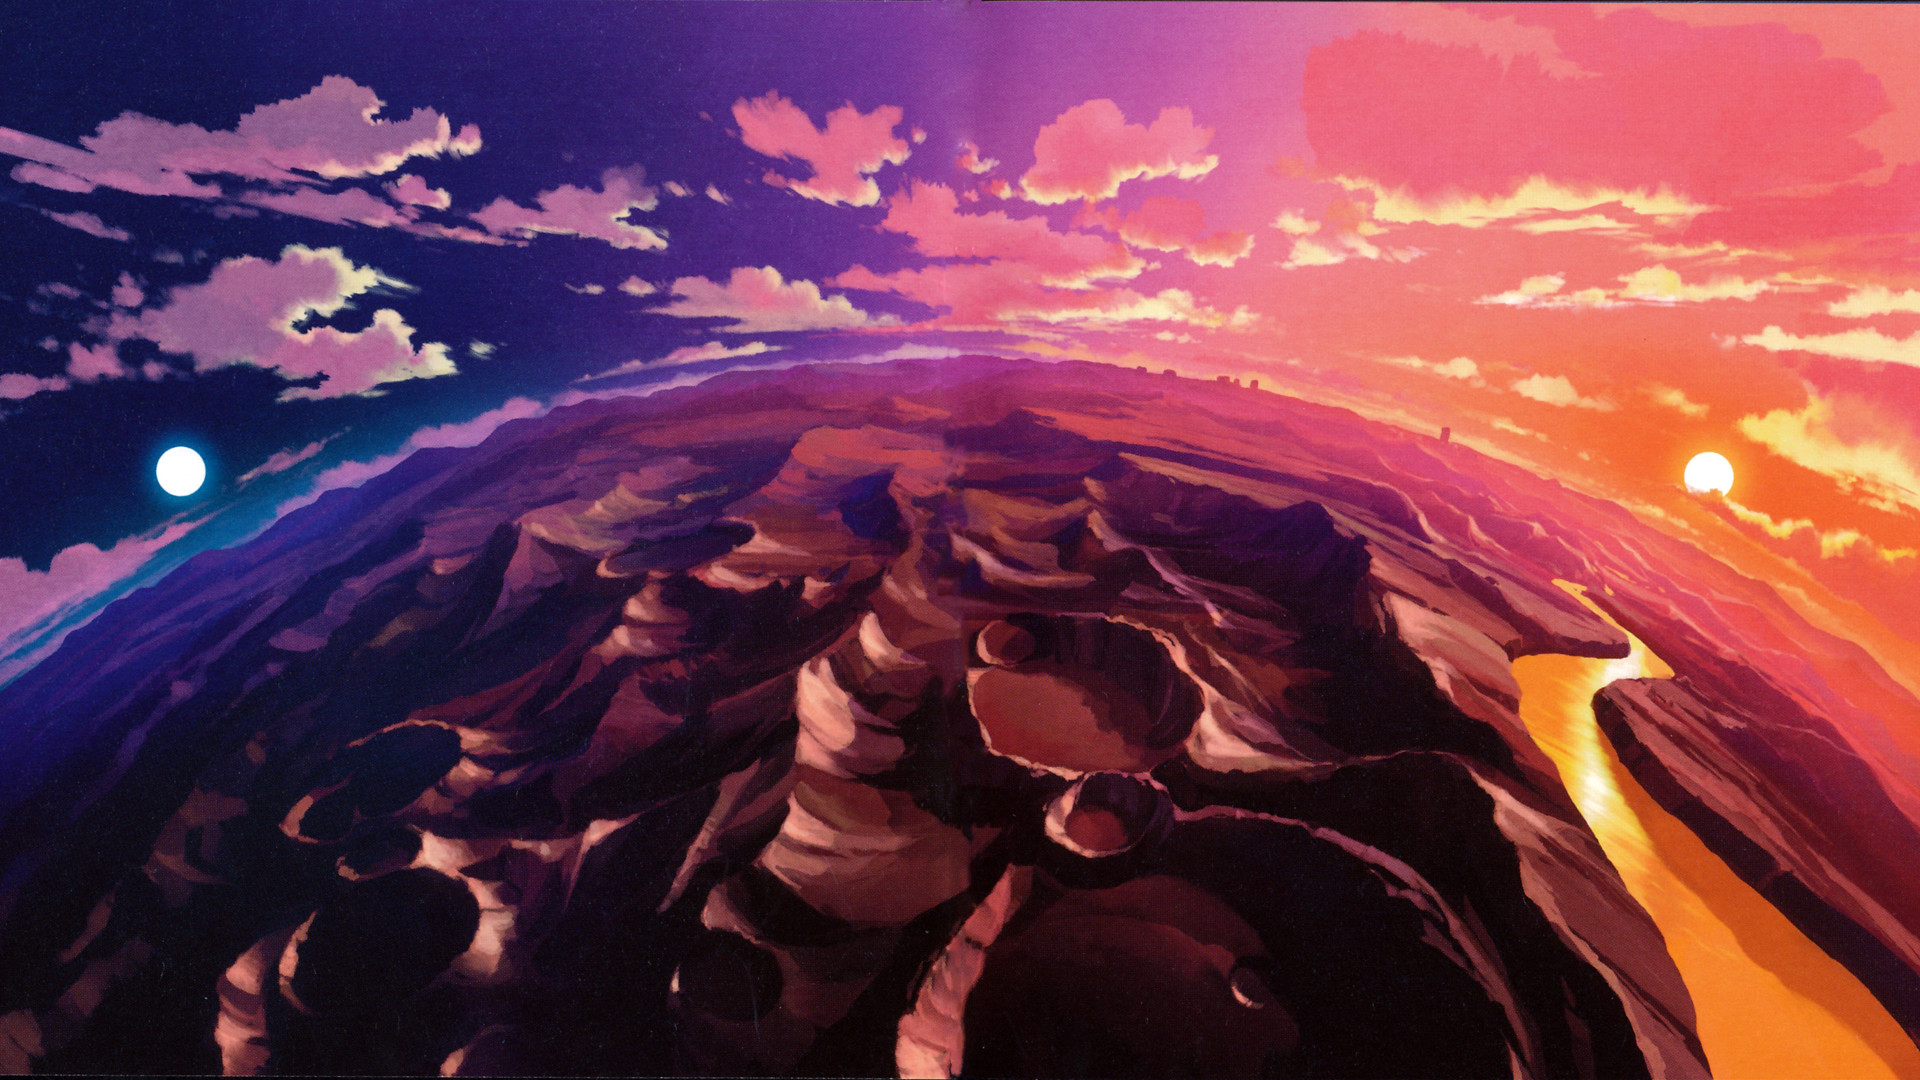 Epic Anime Backgrounds | HD Wallpapers | Pinterest | Wallpaper desktop,  Wallpaper and Anime